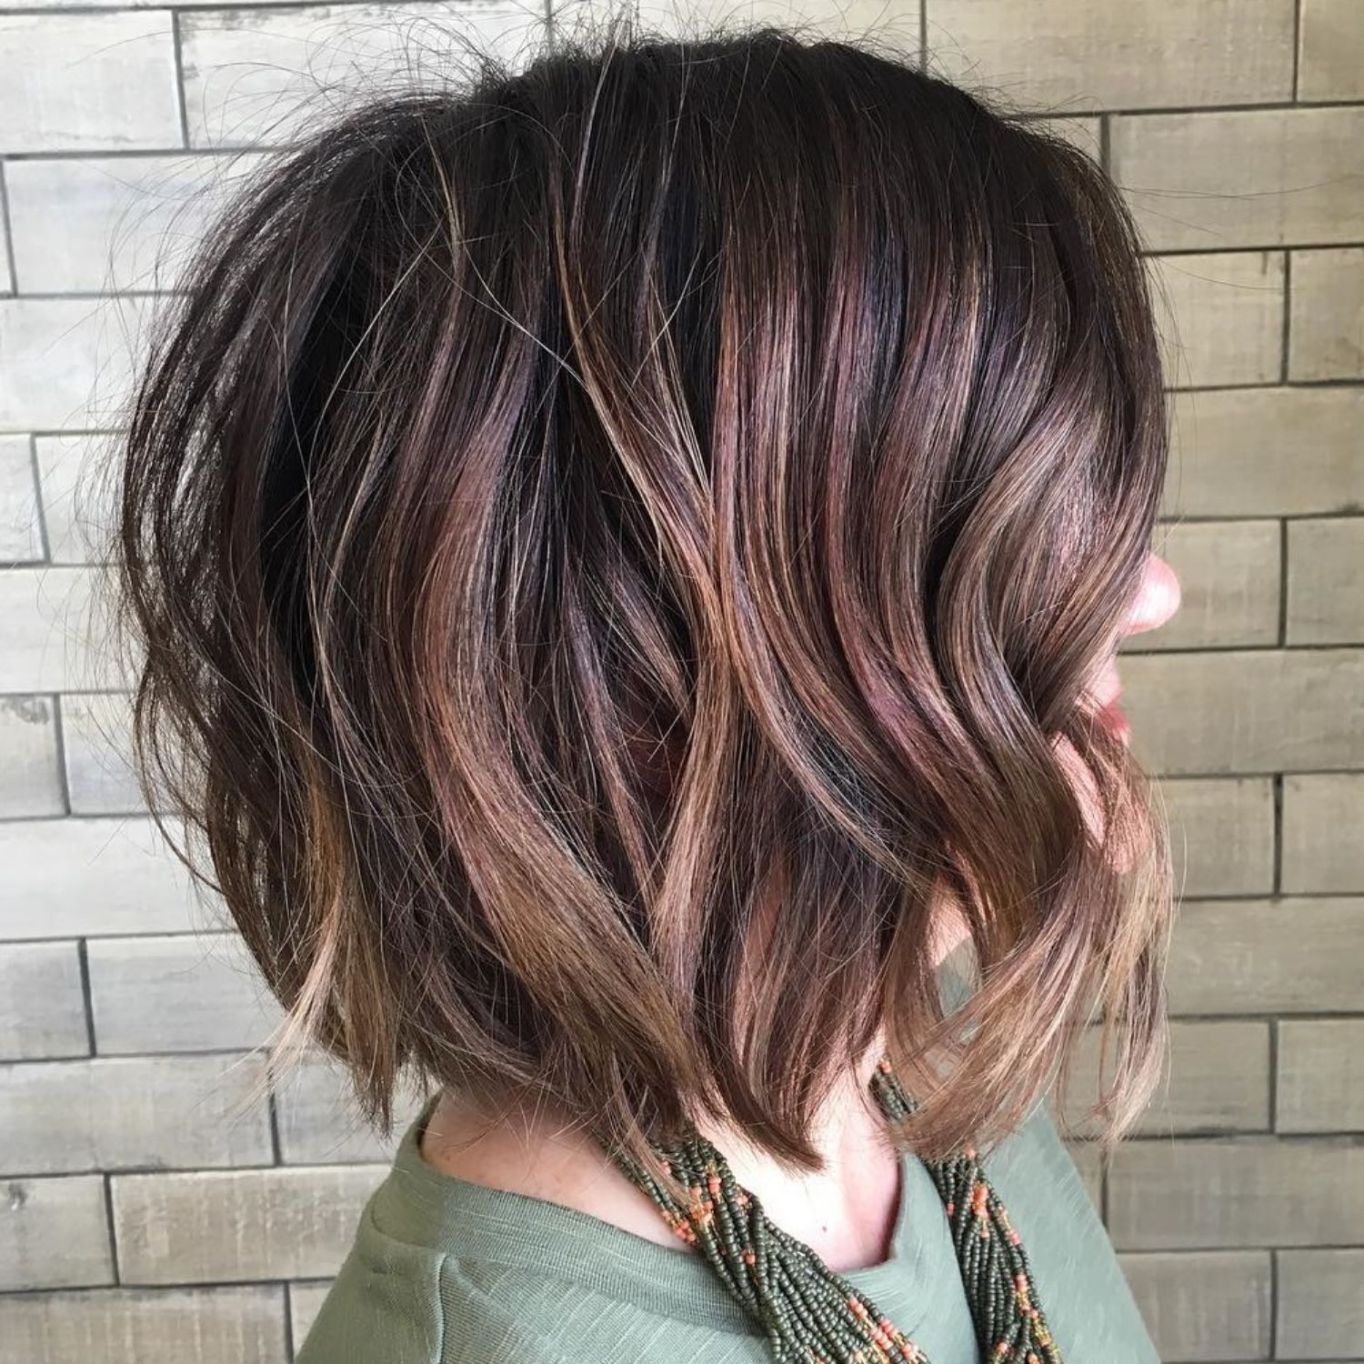 Gorgeous Wavy Bob Hairstyles with an Extra Touch of Femininity